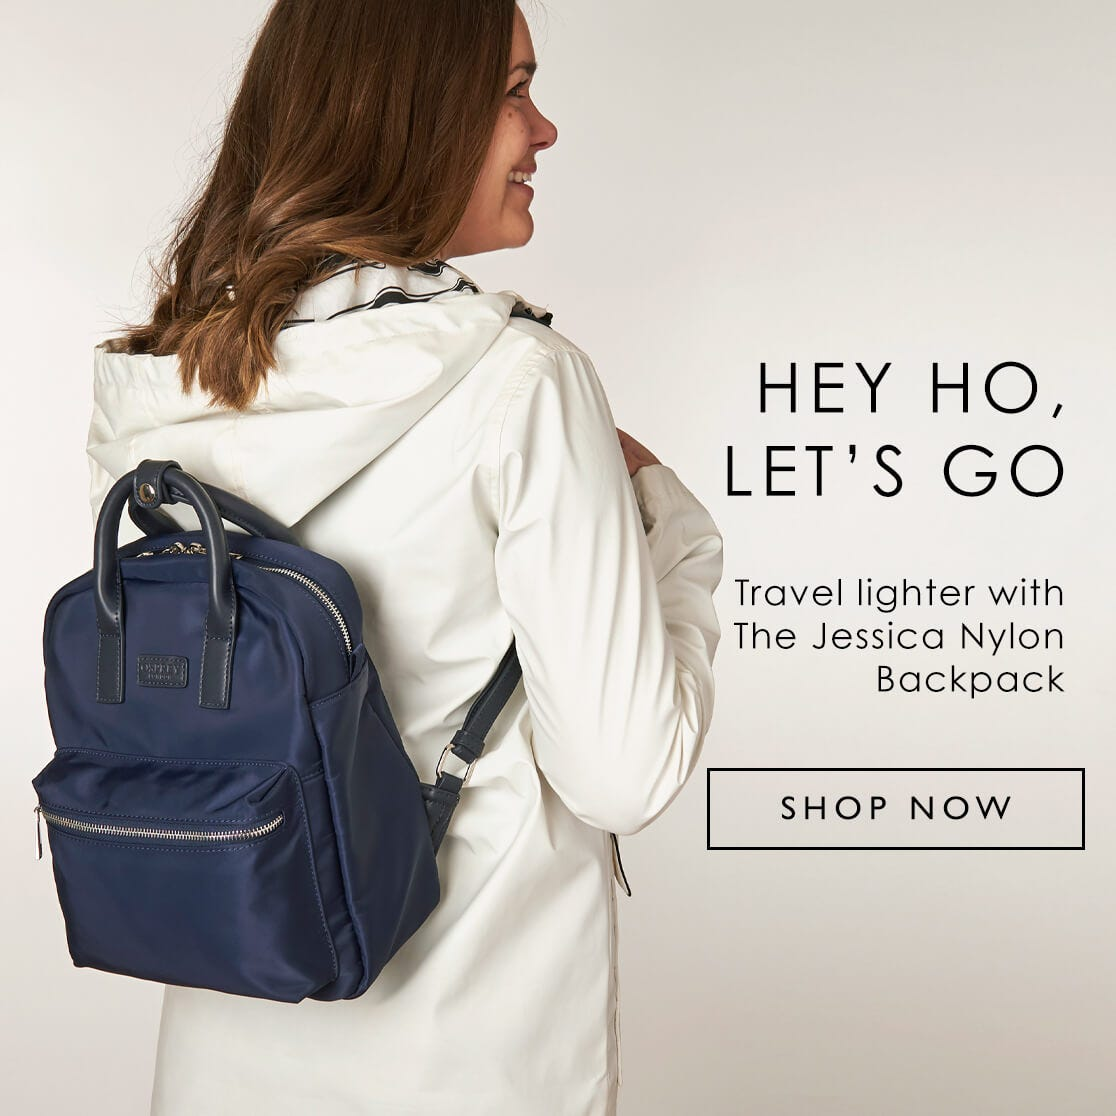 Travel lighter with The Jessica Nylon Backpack